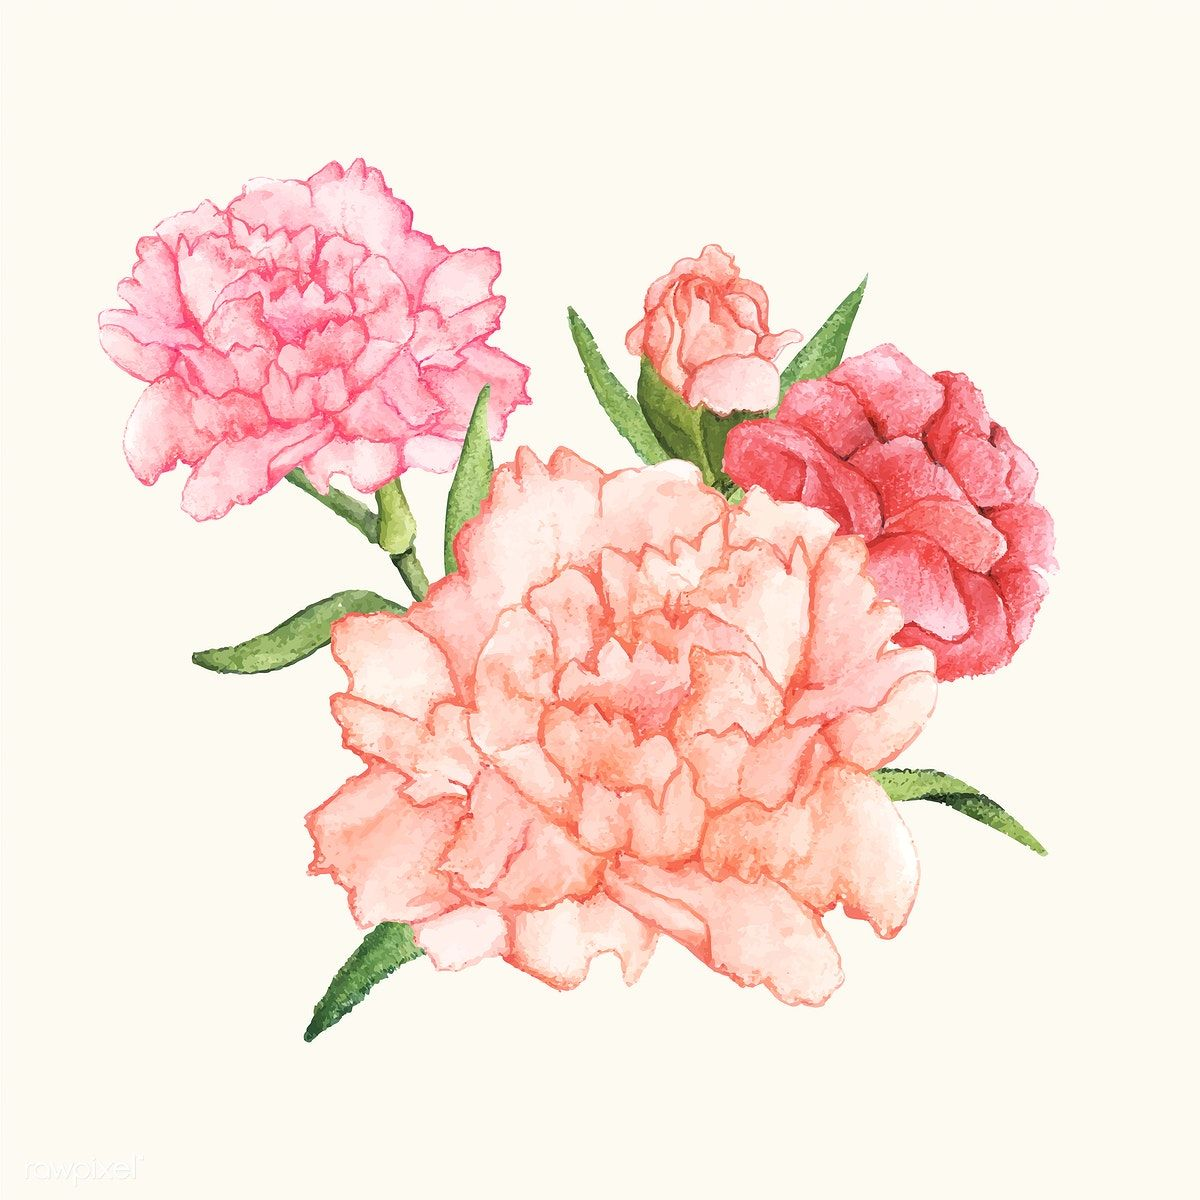 Hand Drawn Carnation Flower Isolated Free Image By Rawpixel Com How To Draw Hands Carnation Flower Flower Drawing